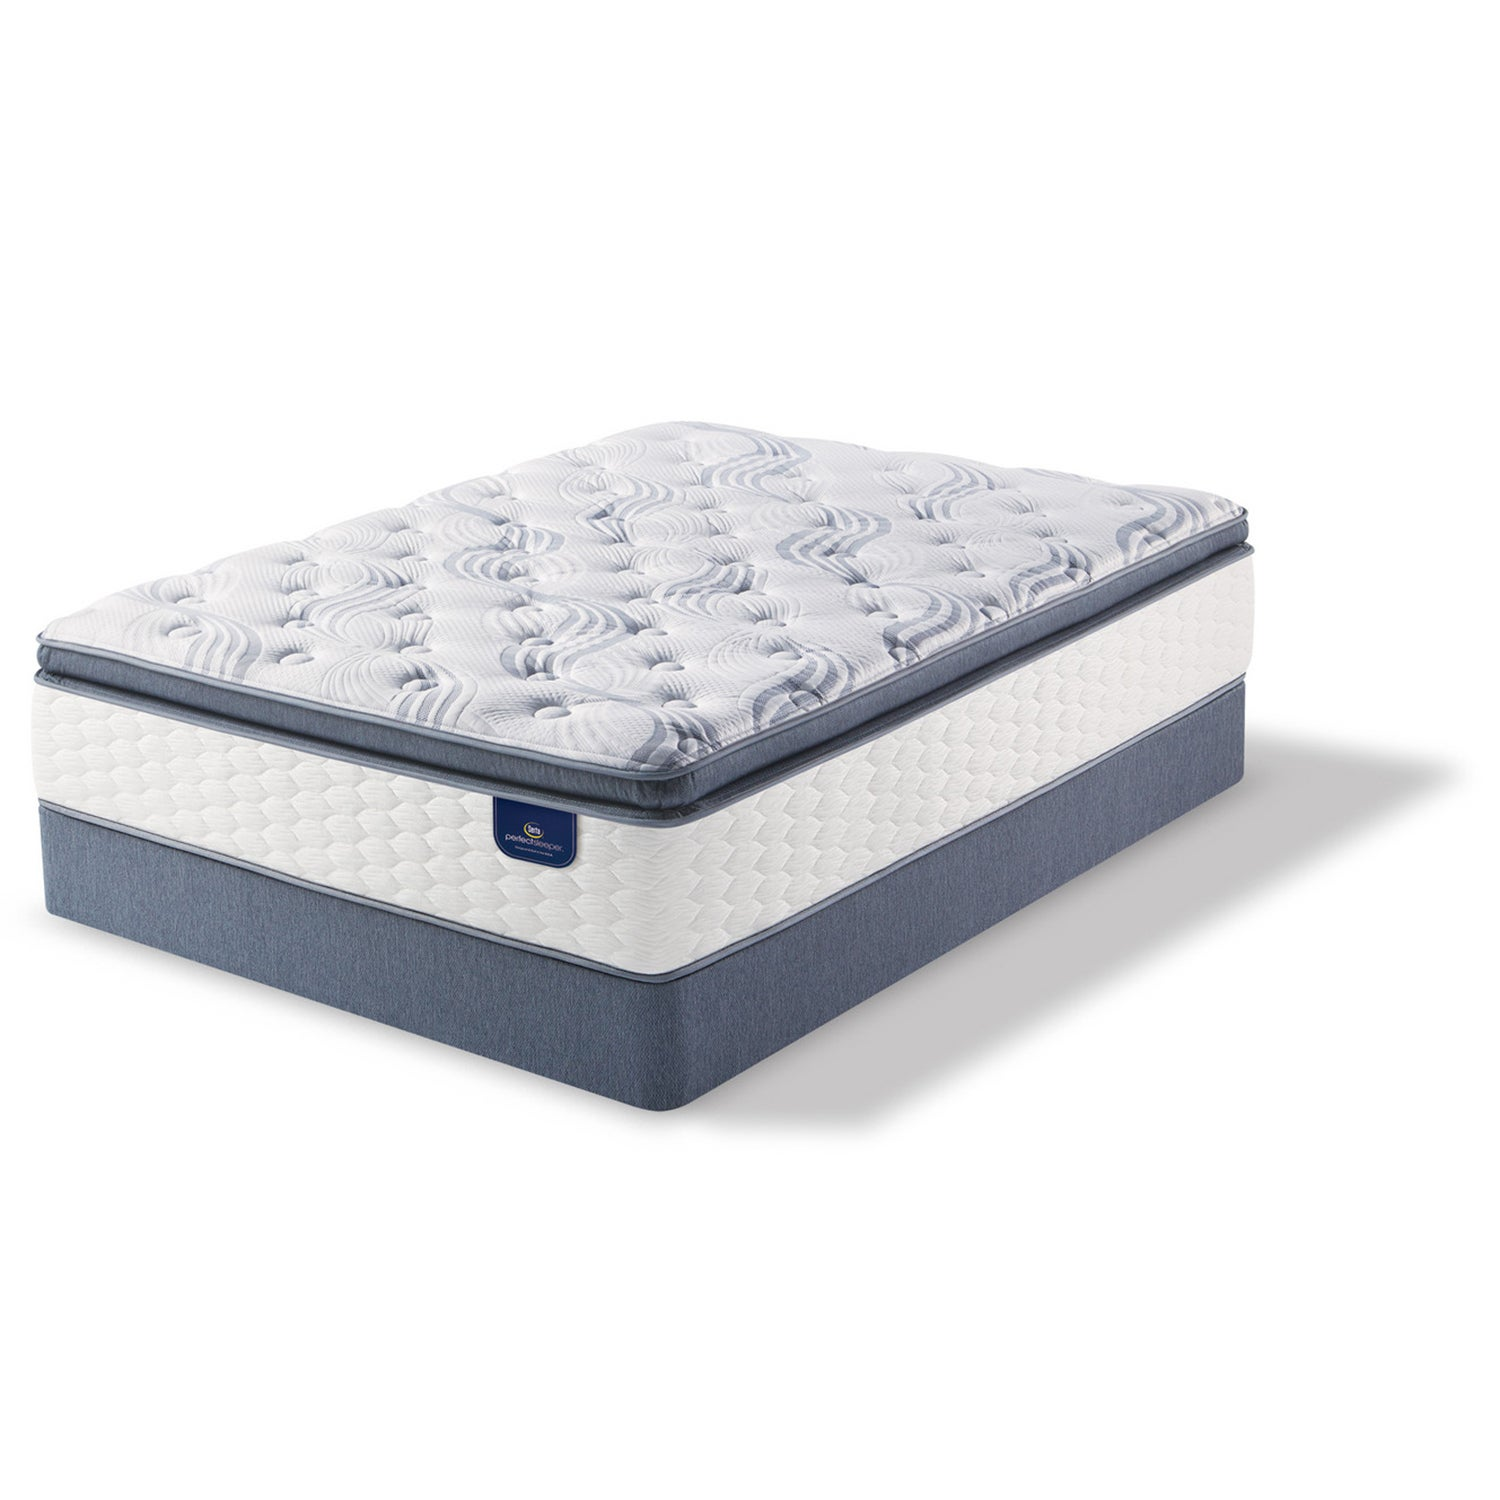 q city plpt plush pillow sleep sun simmons top silo mattress shop topper beautysleep valley